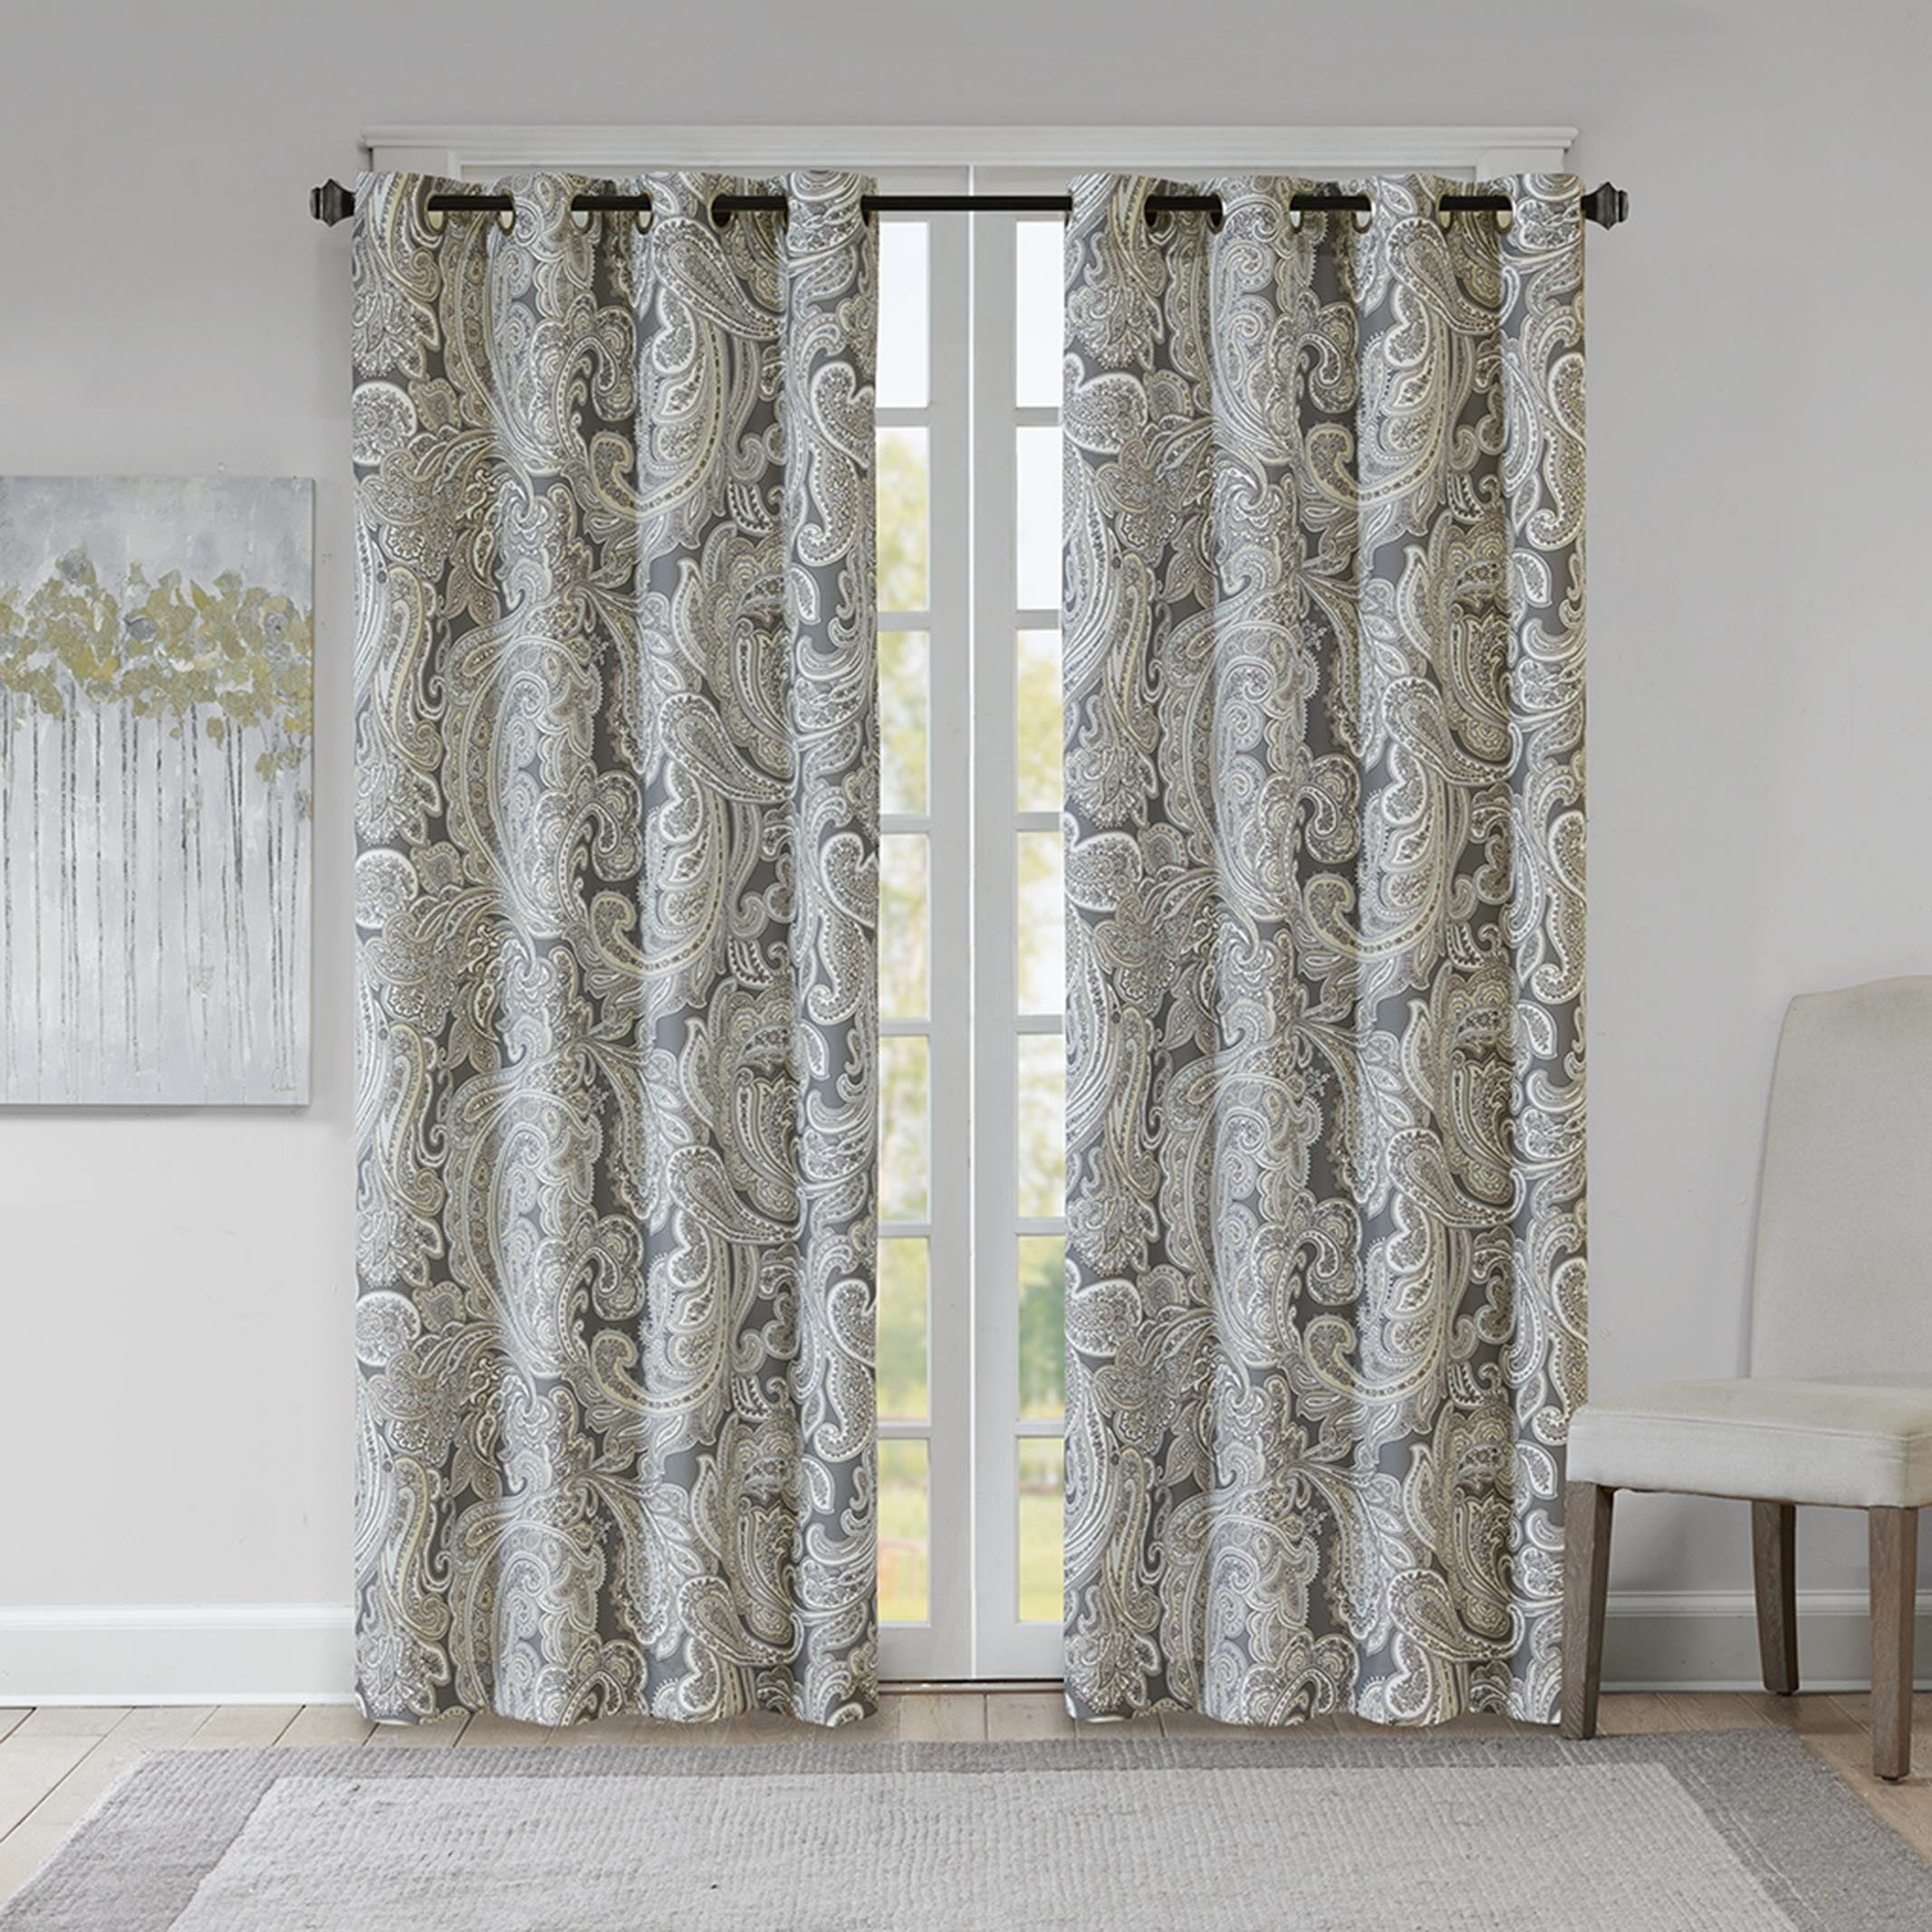 Shop The Gray Barn Yturria Grey Cotton Printed Paisley Curtain Panel